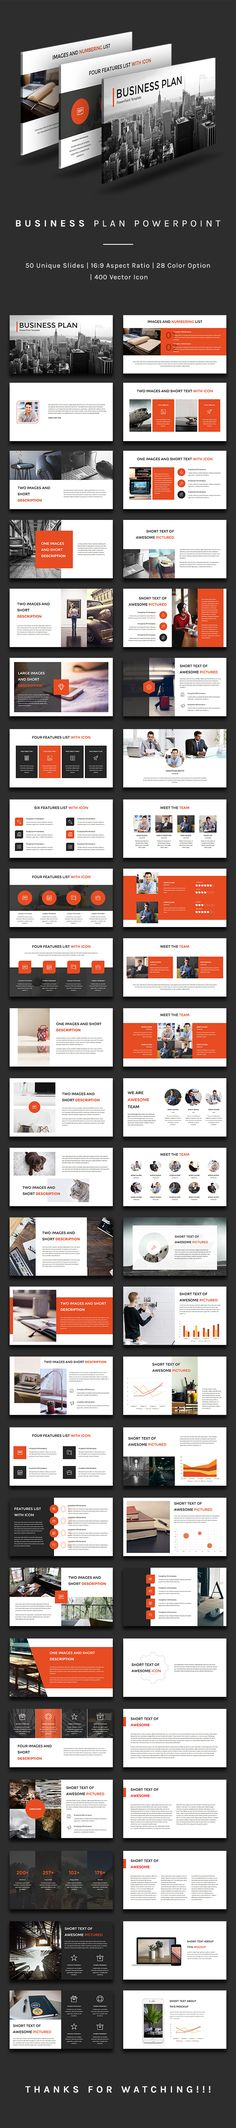 Business Plan Powerpoint — Powerpoint PPT #marketing presentation #clean presentation • Download ➝ https://graphicriver.net/item/business-plan-powerpoint/19193700?ref=pxcr